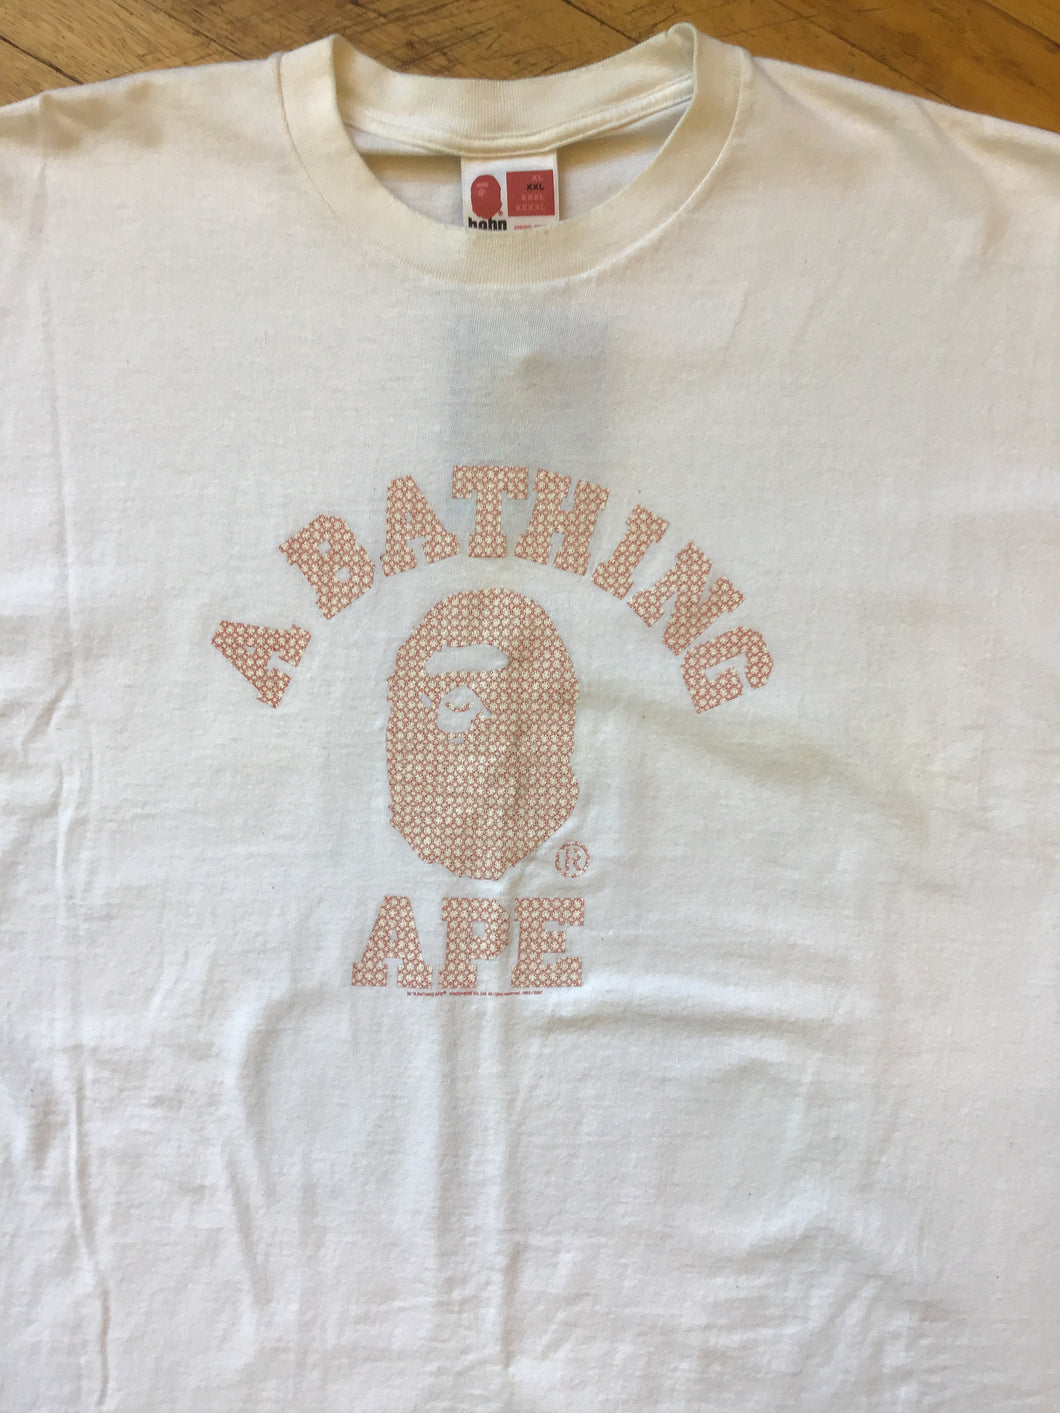 CONSIGN TG 12 : BAPE PATTERN COLLEGE T-SHIRT